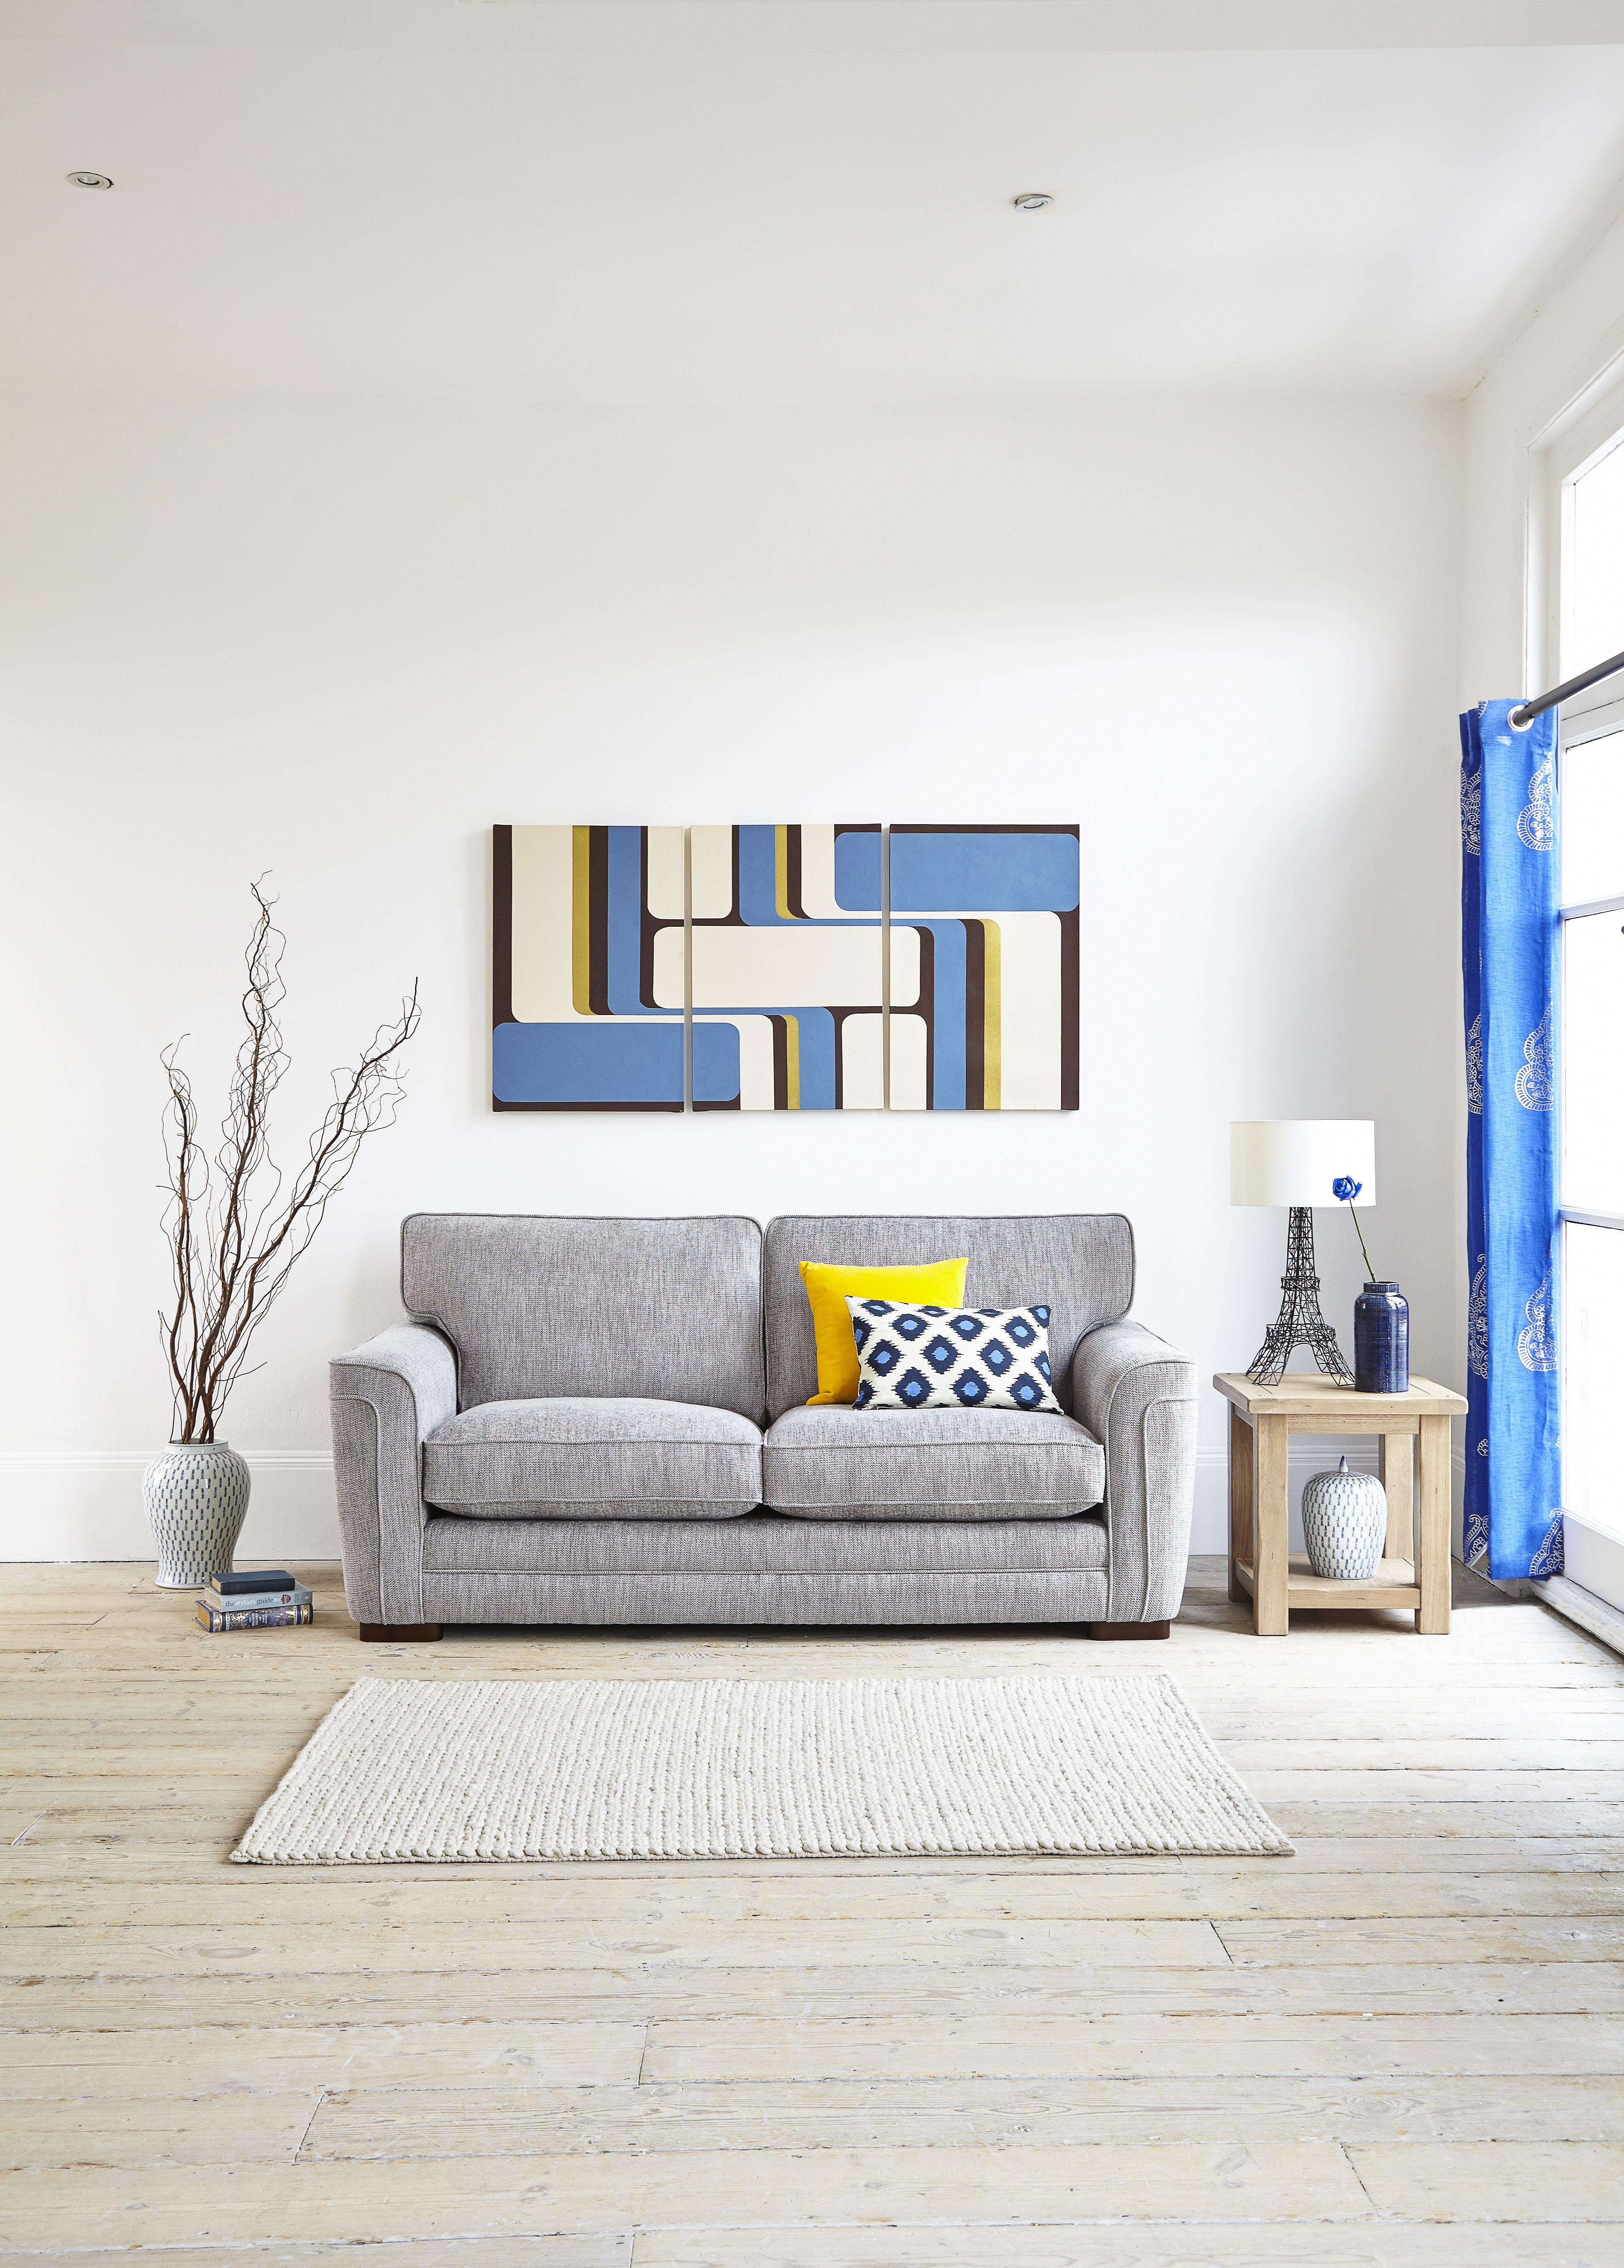 Choosing Sofa Fabric? Read our sofa buying guide and ask yourself ...